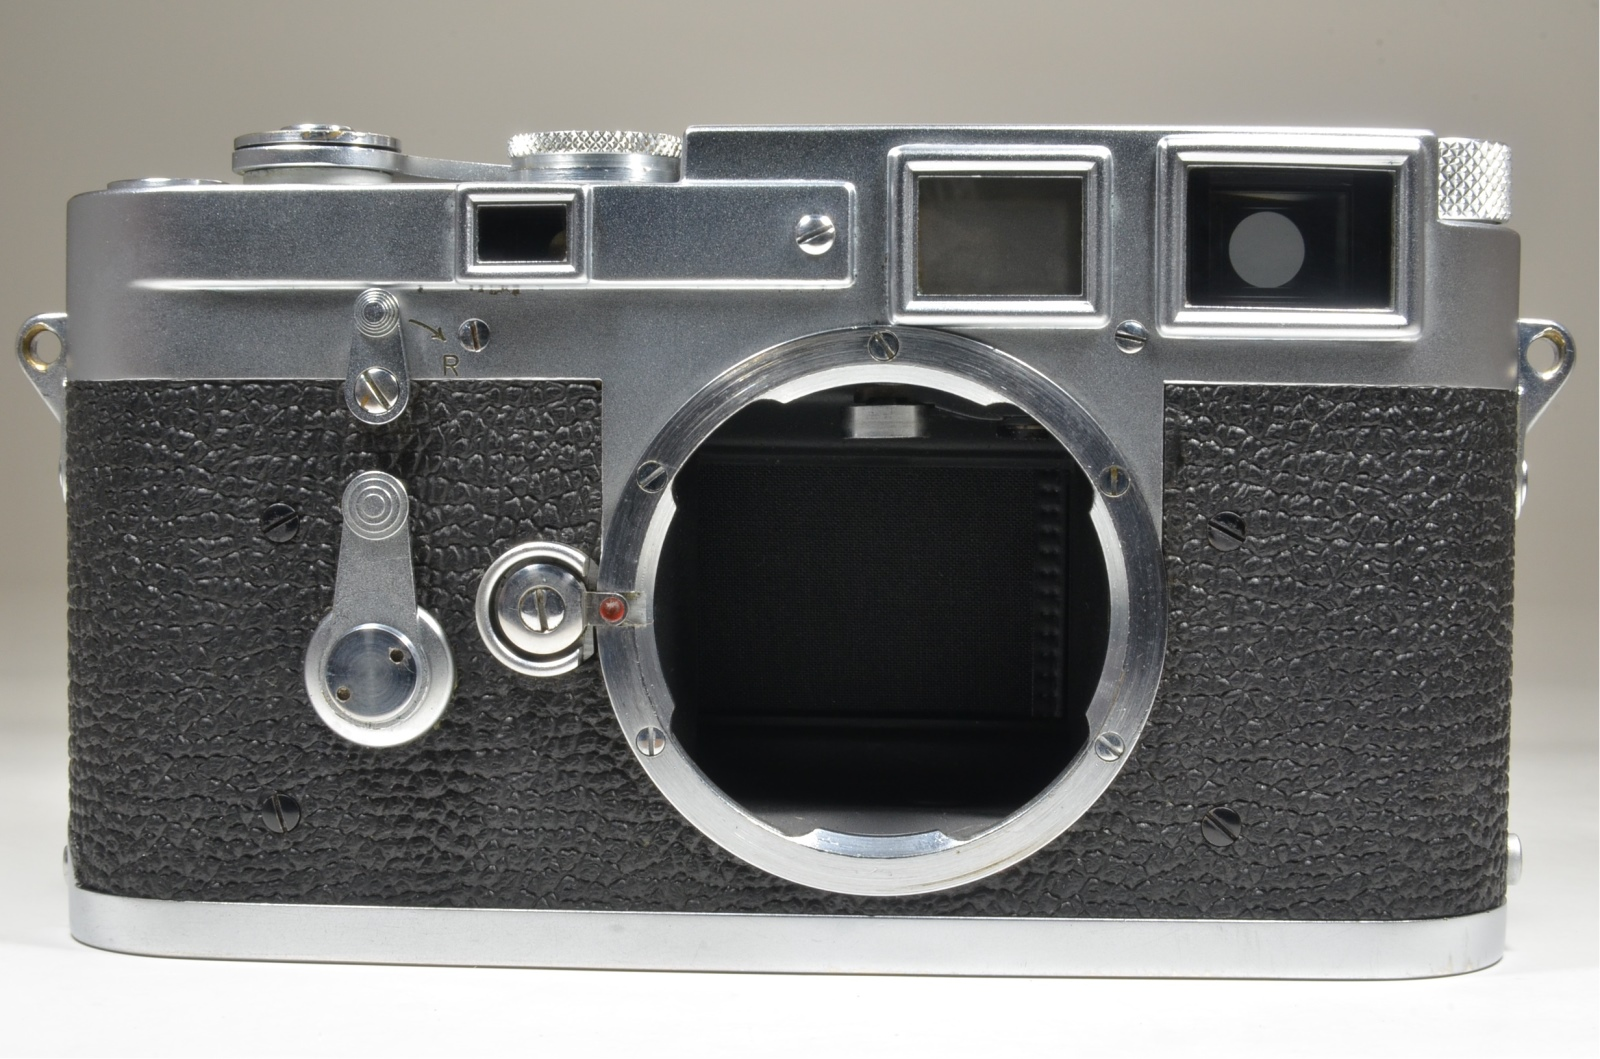 leica m3 double stroke s/n 704138 year 1954 with full leather case